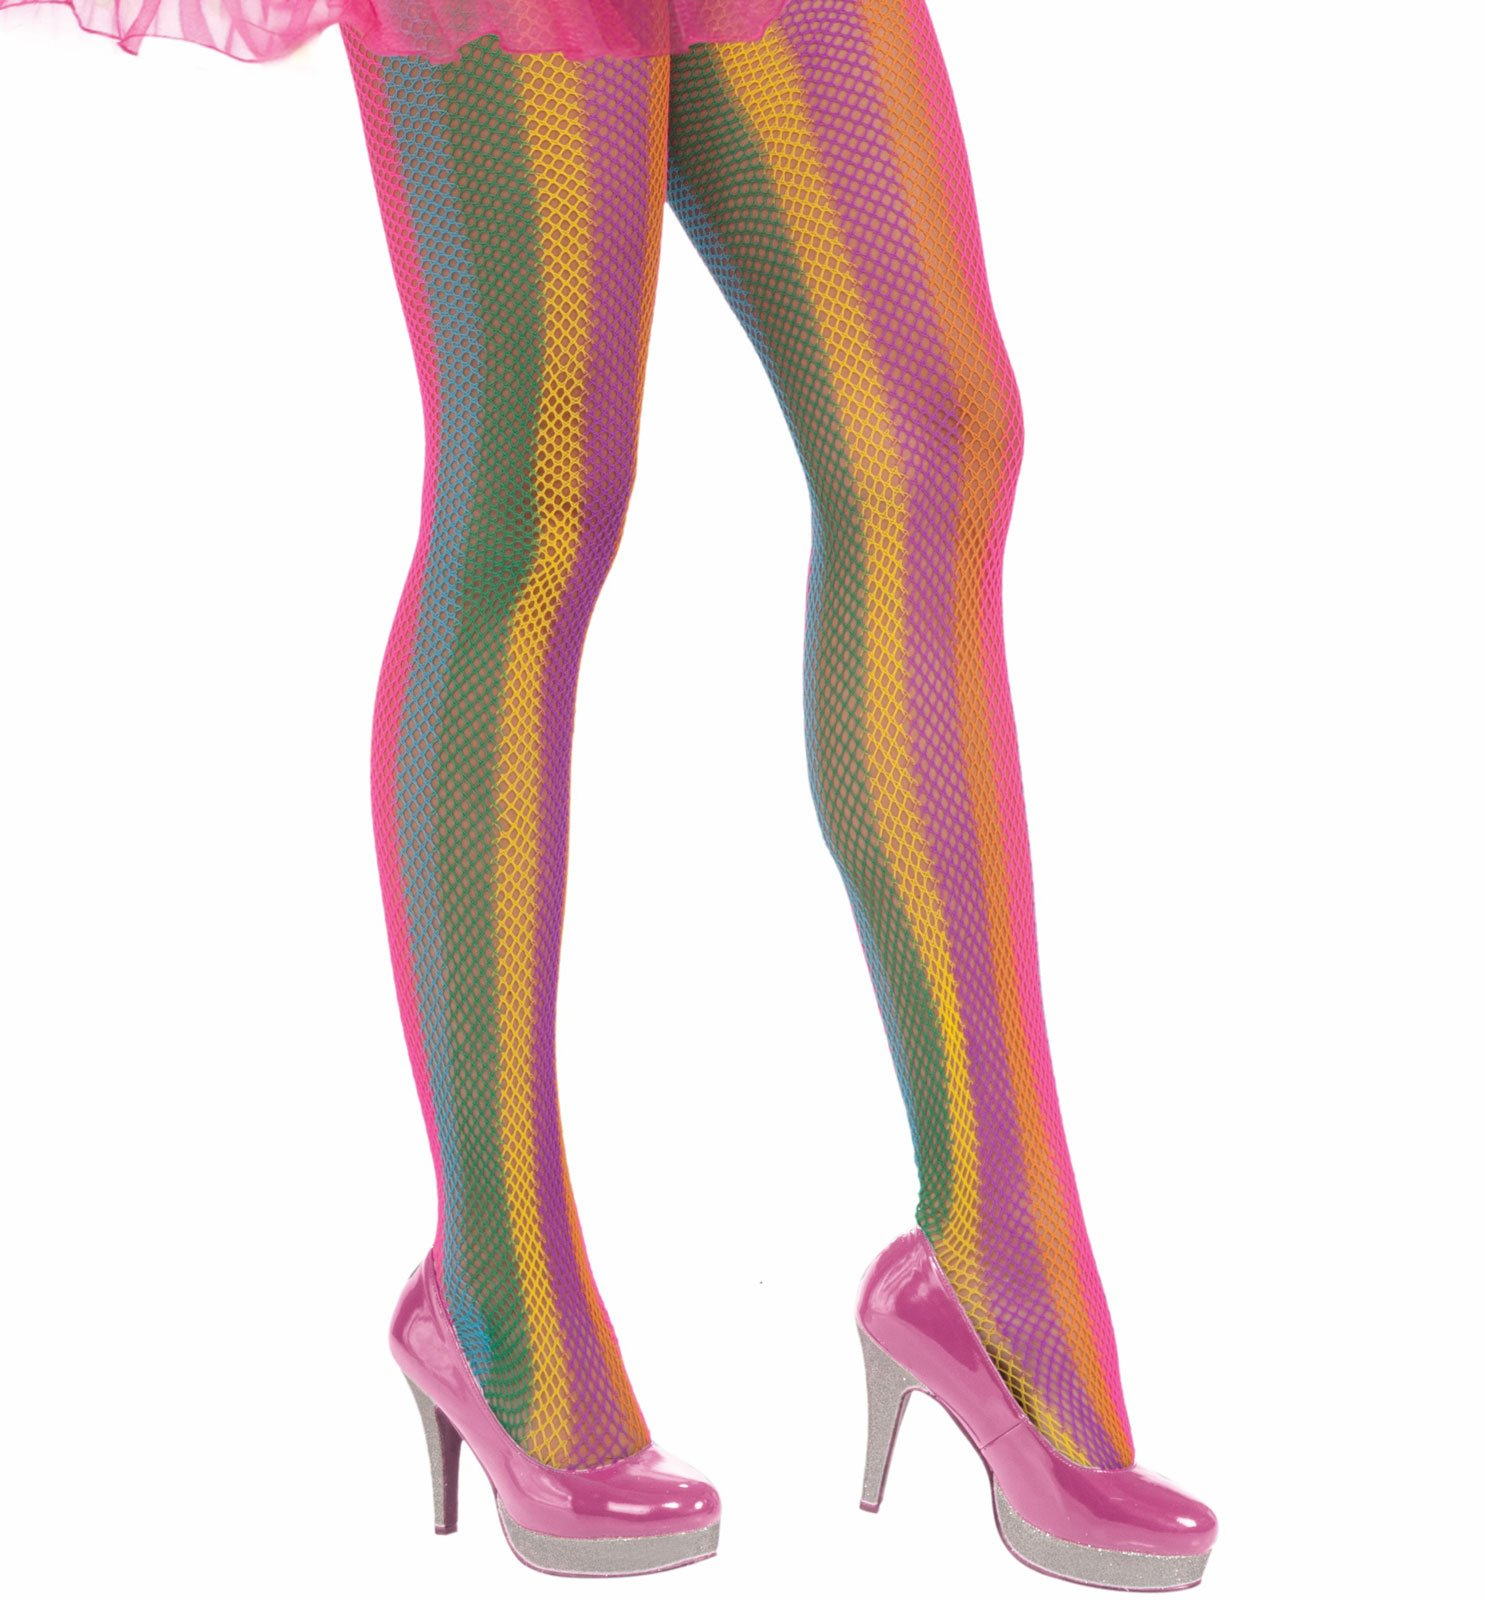 Circus Sweetie Rainbow Striped Fishnet Panty Hose